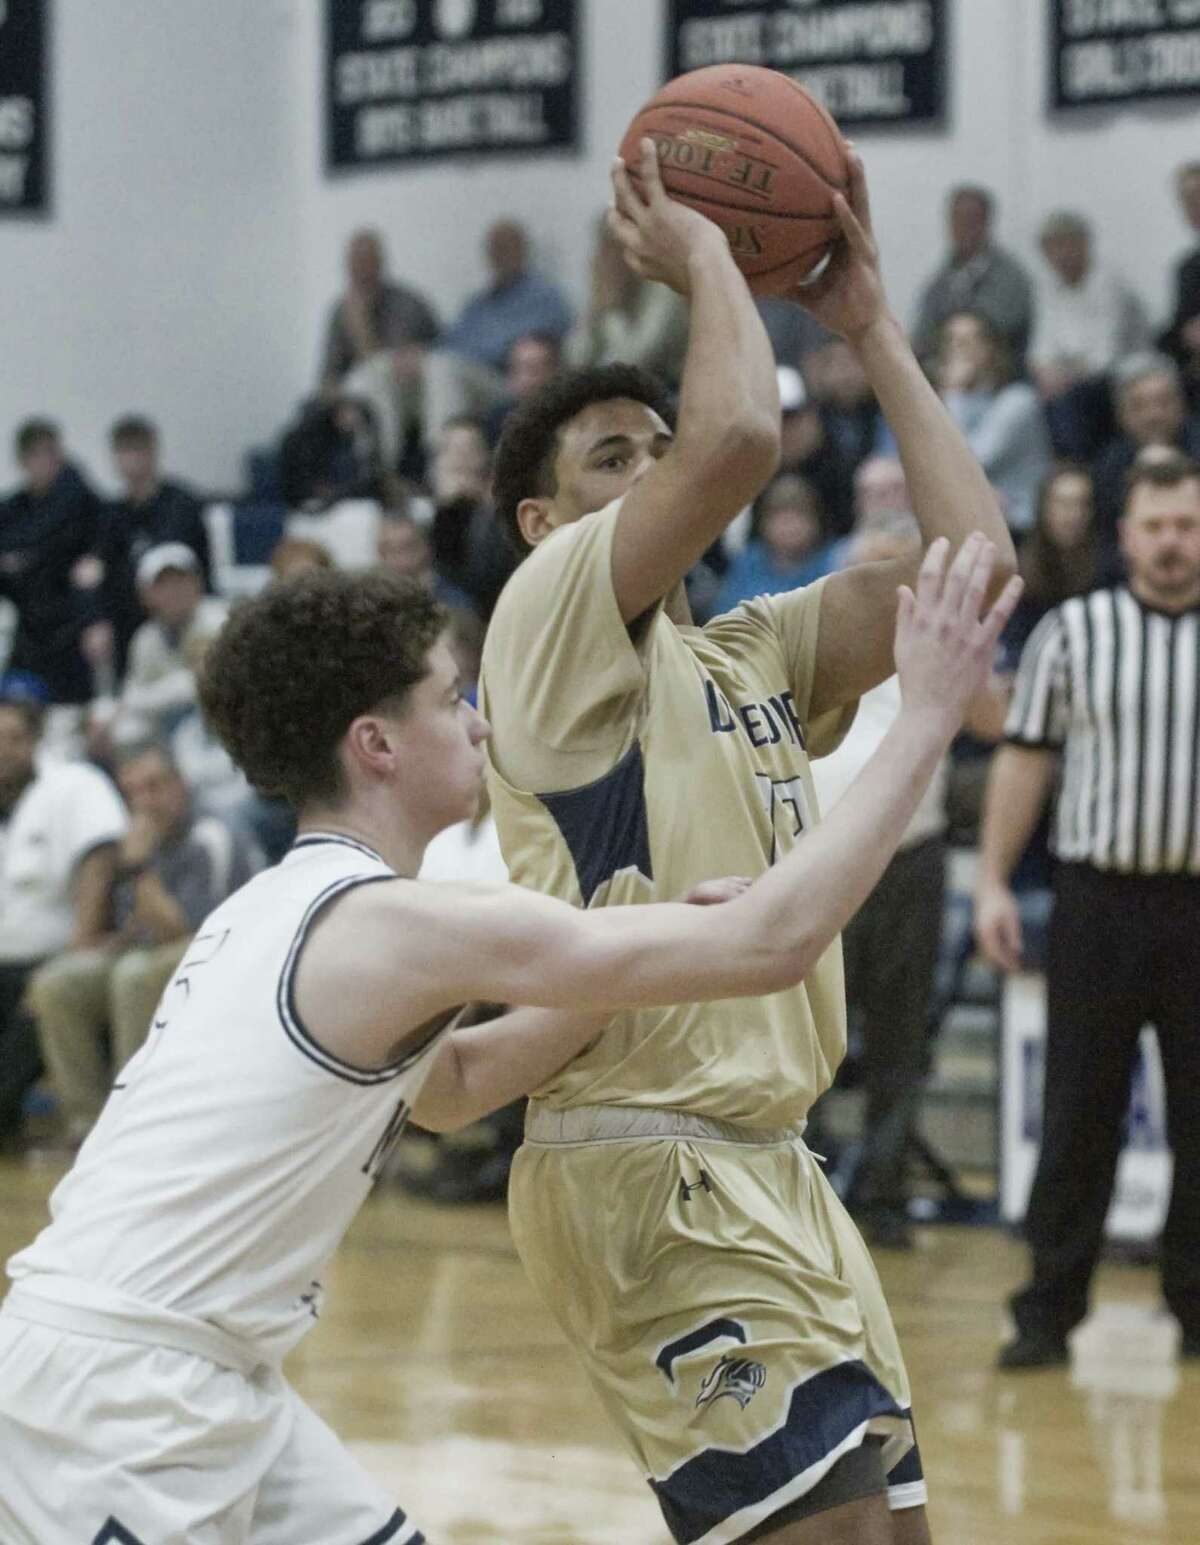 Notre Dame-Fairfield High School's Derek Long tries to get off a shot in the SWC boys basketball tournament semifinal against Immaculate High School, played at Immaculate. Monday, Feb. 25, 2019